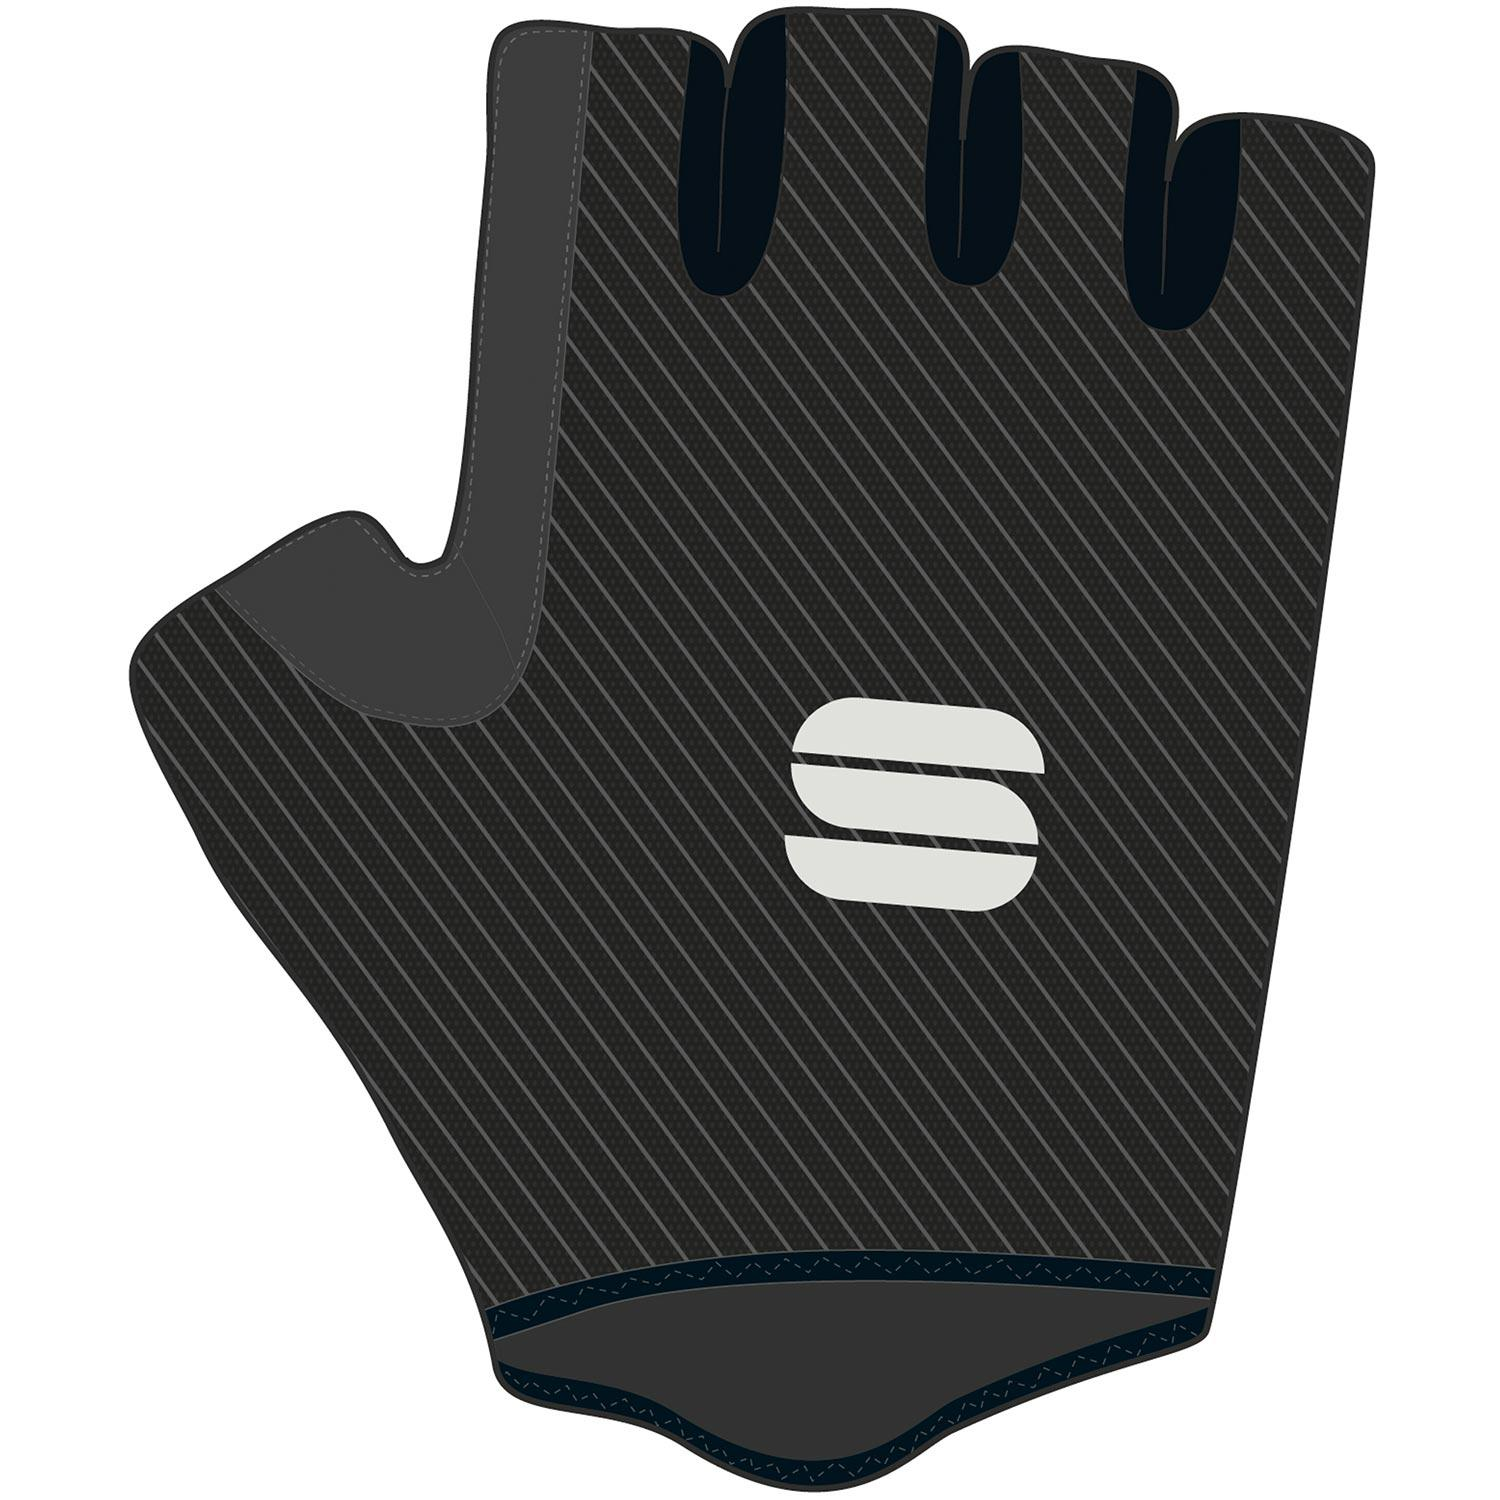 Sportful-Sportful Air Gloves-Black-XS-SF210500021-saddleback-elite-performance-cycling